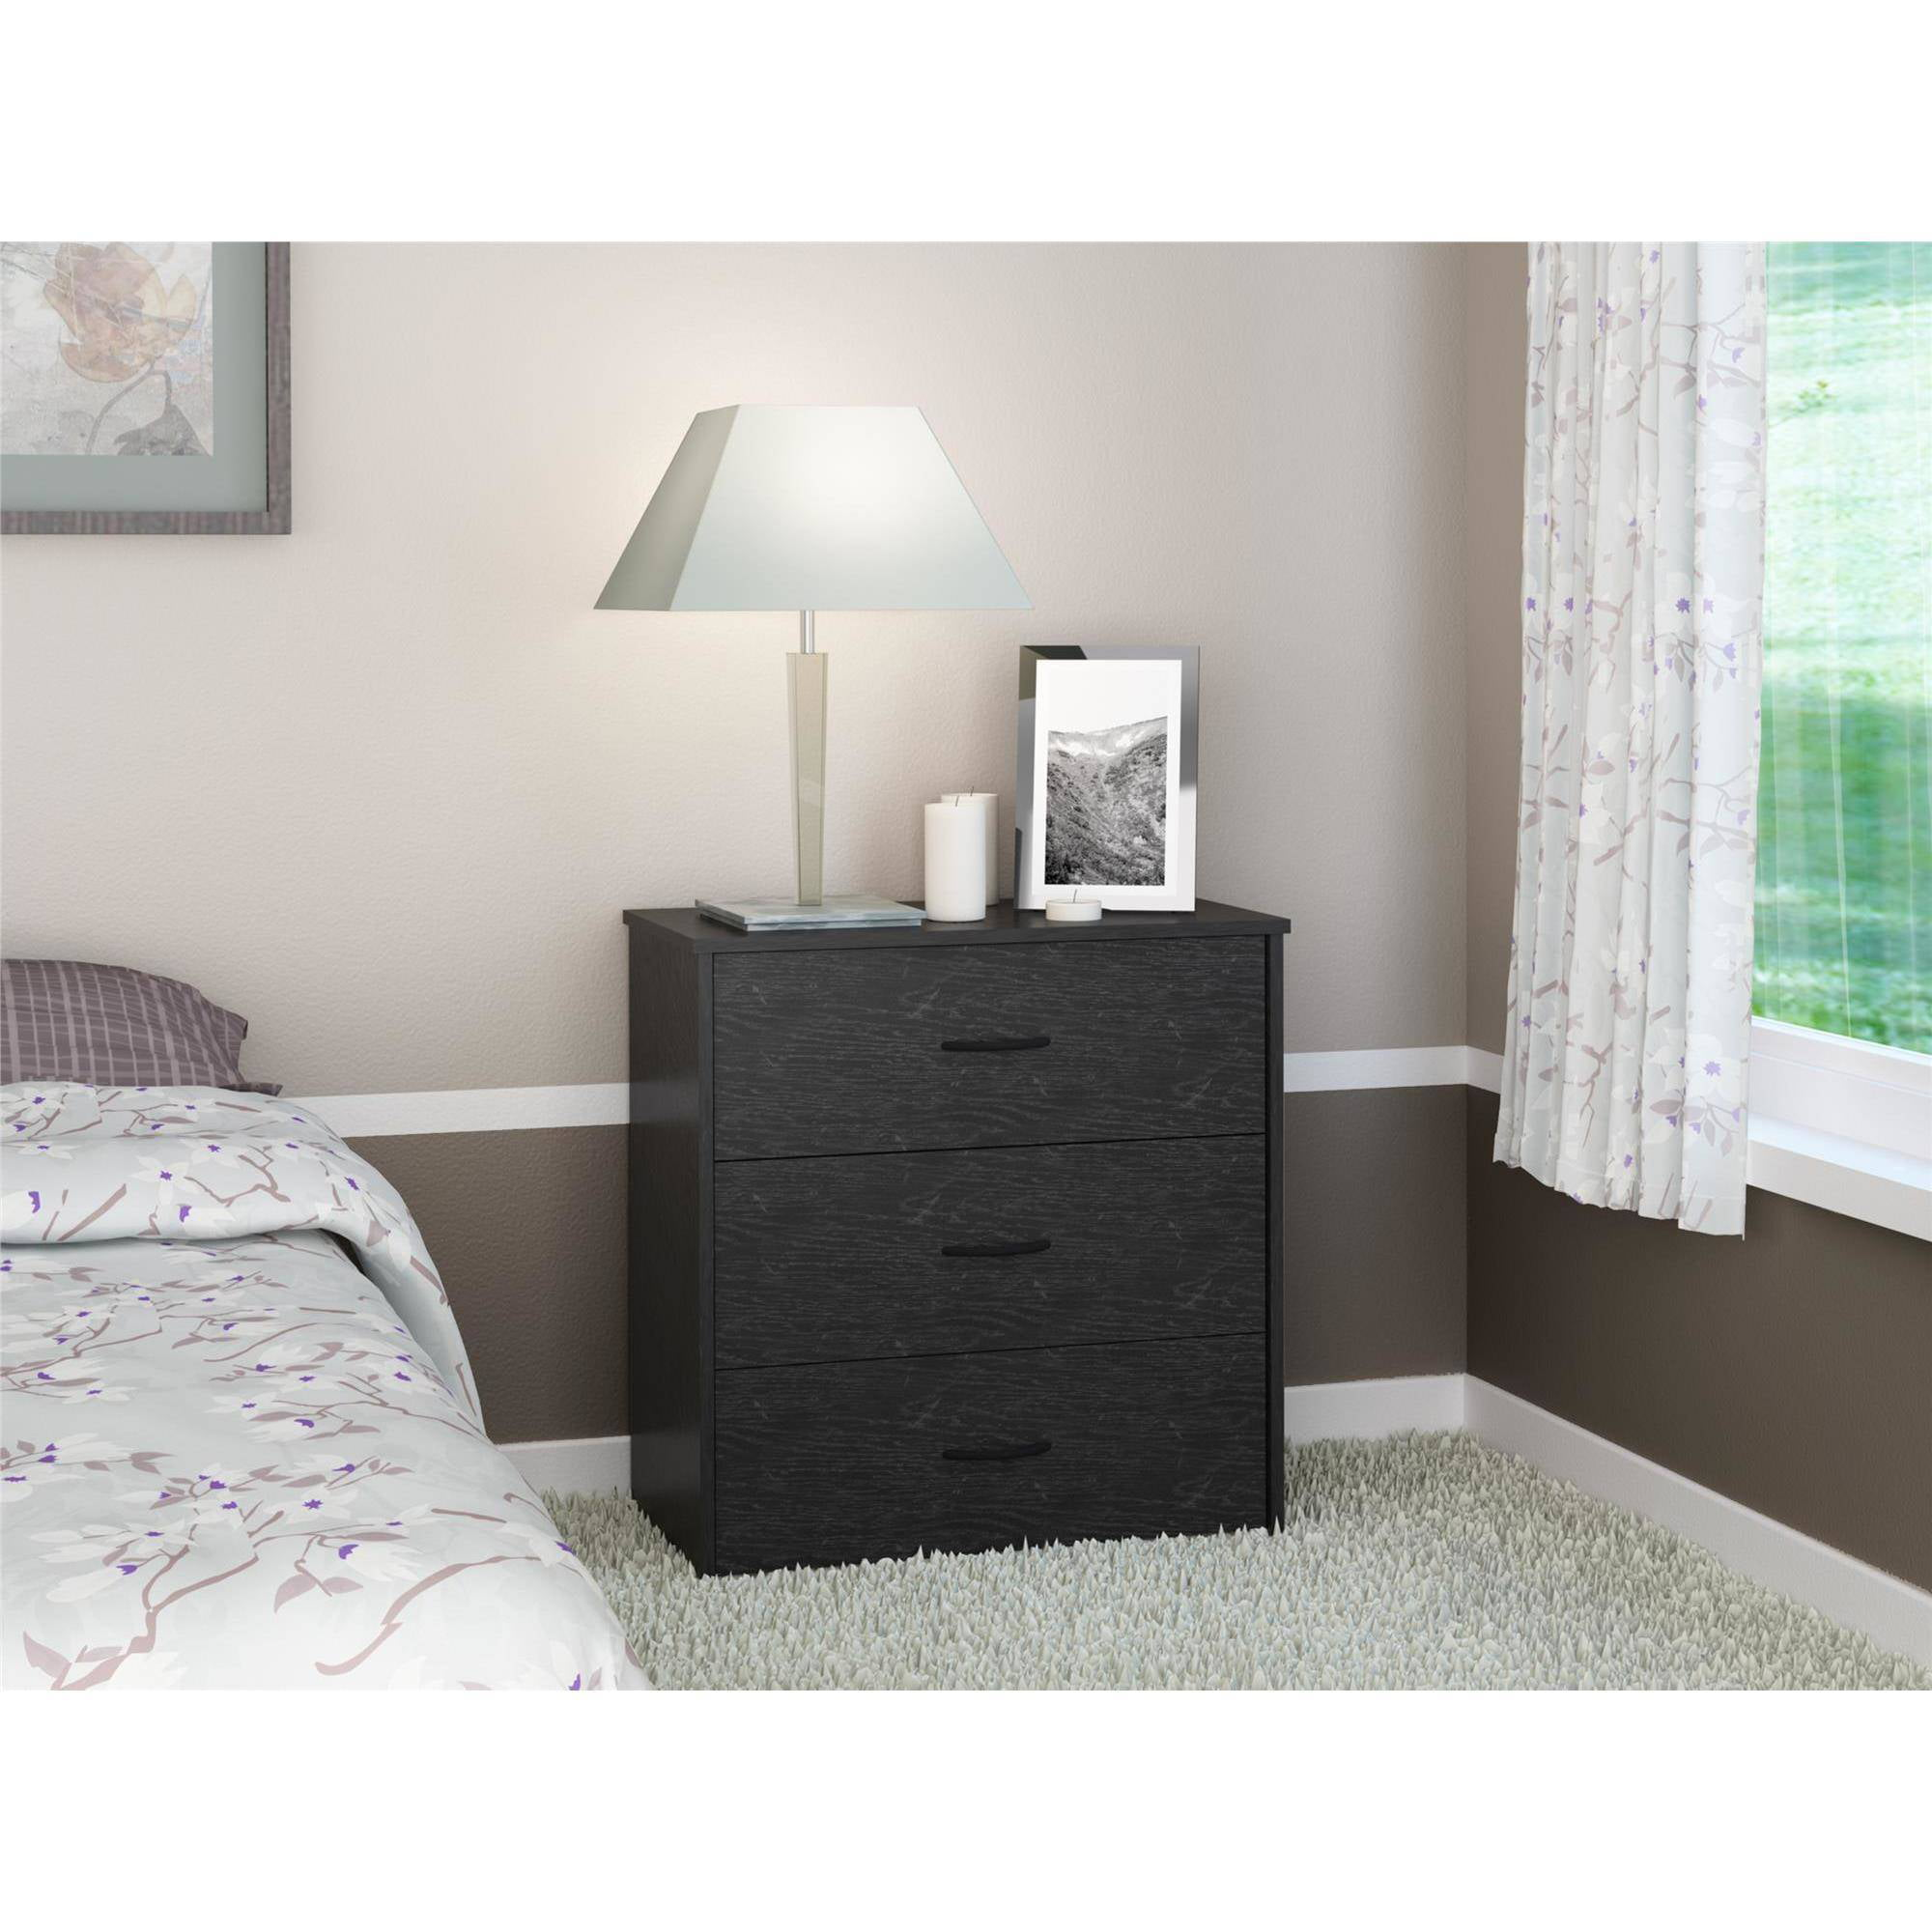 Dressers For Small Bedrooms: 3 Drawer Dresser Chest Bedroom Furniture Black Brown White